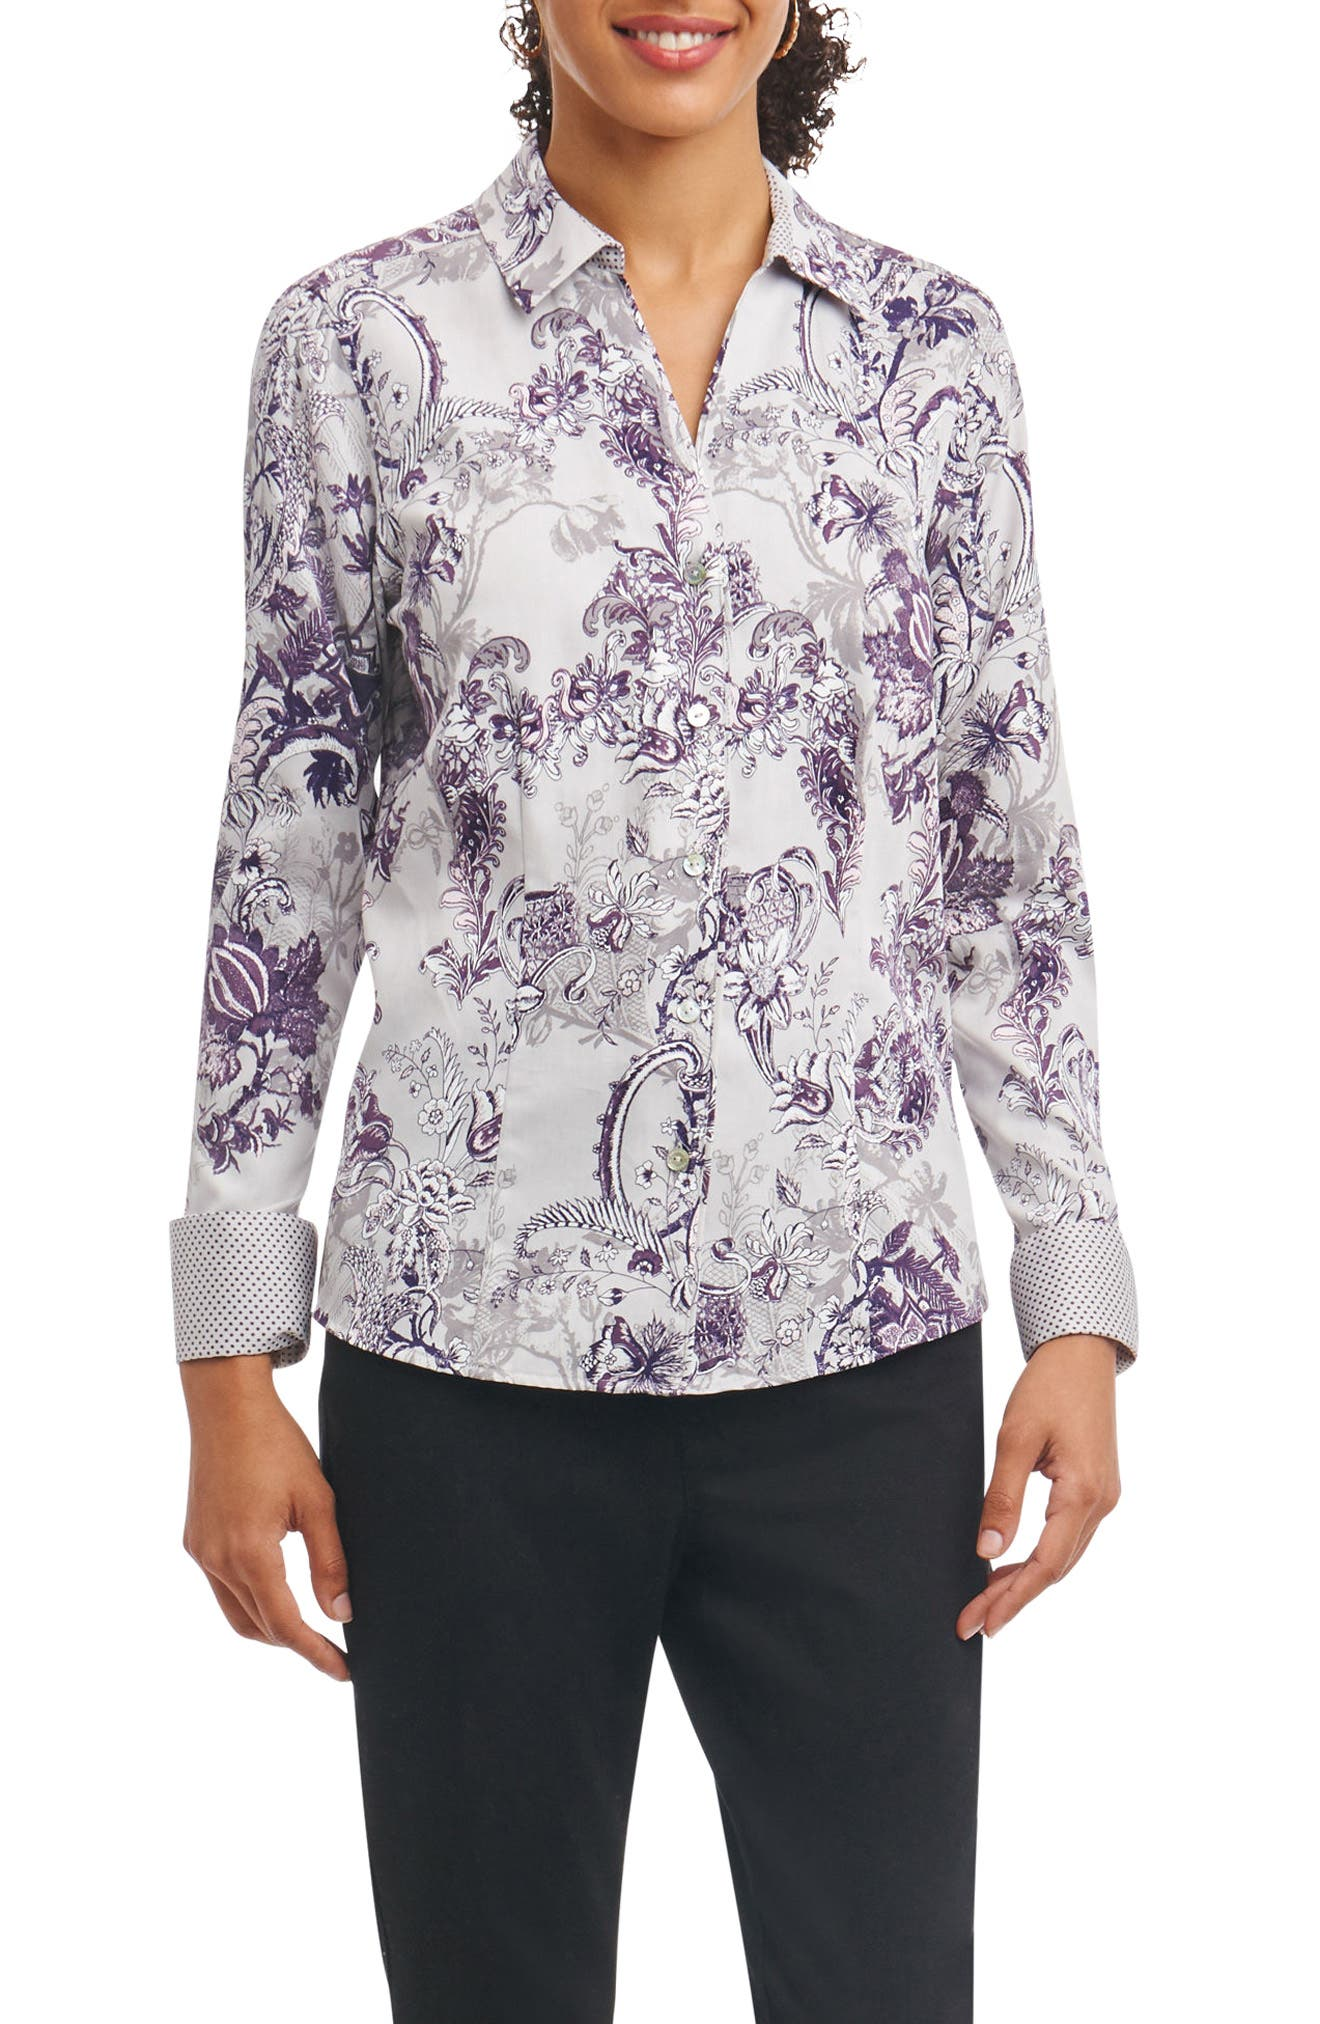 Lauren Floral Tapestry Wrinkle Free Shirt,                             Main thumbnail 1, color,                             037